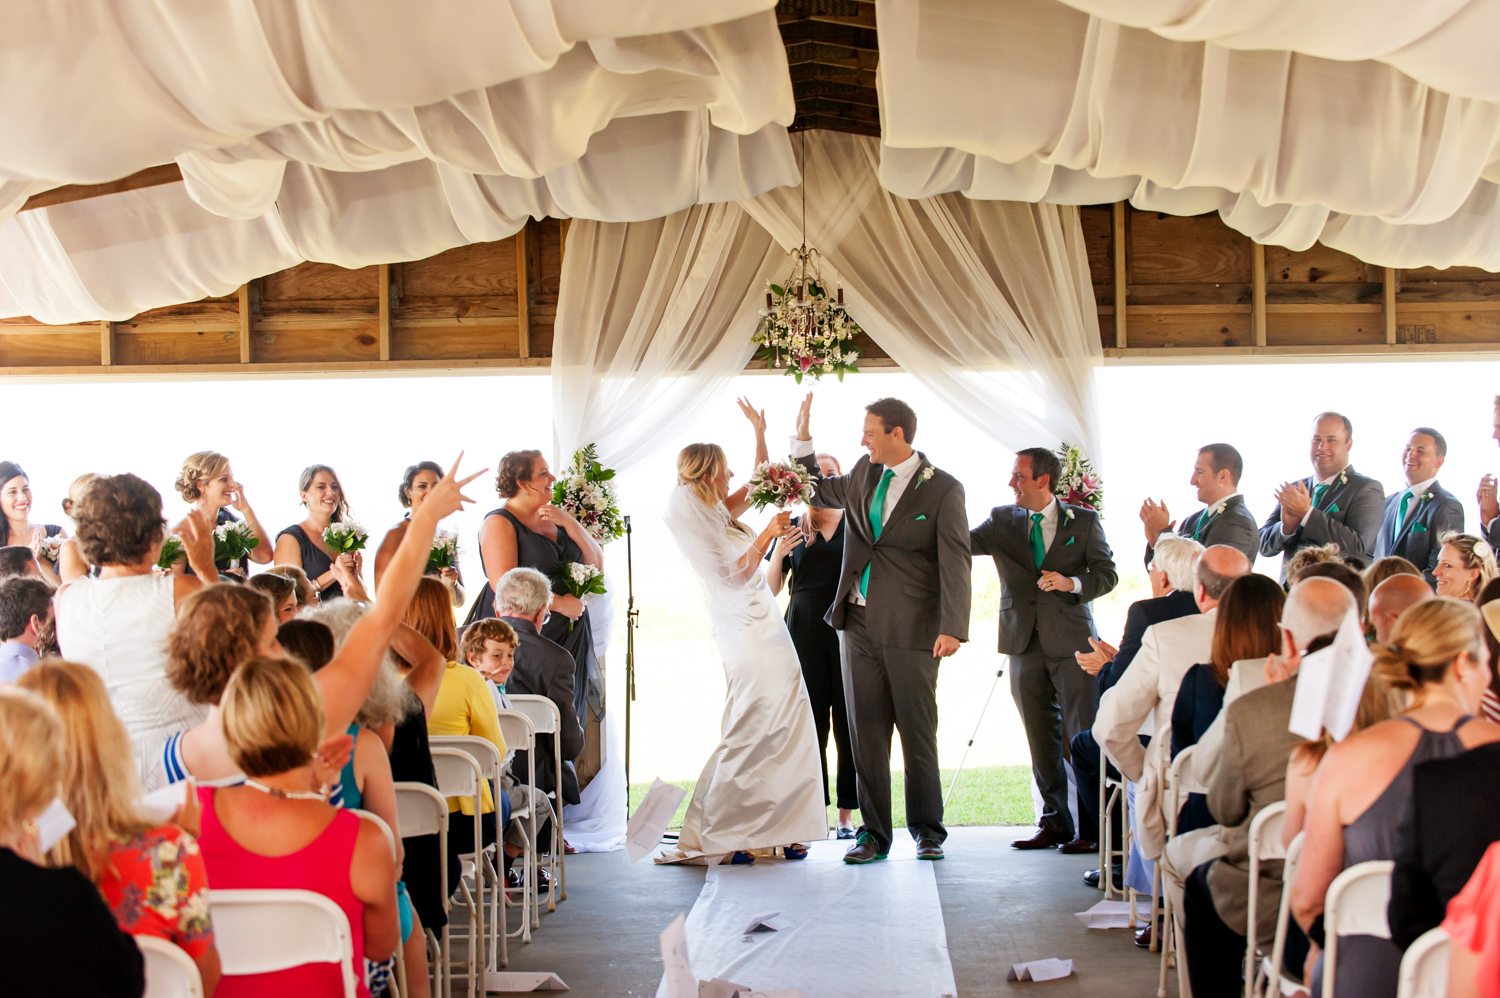 BridalPulse - An Outdoor Vineyard Wedding in NC By Rent My Wedding | bride and groom just married